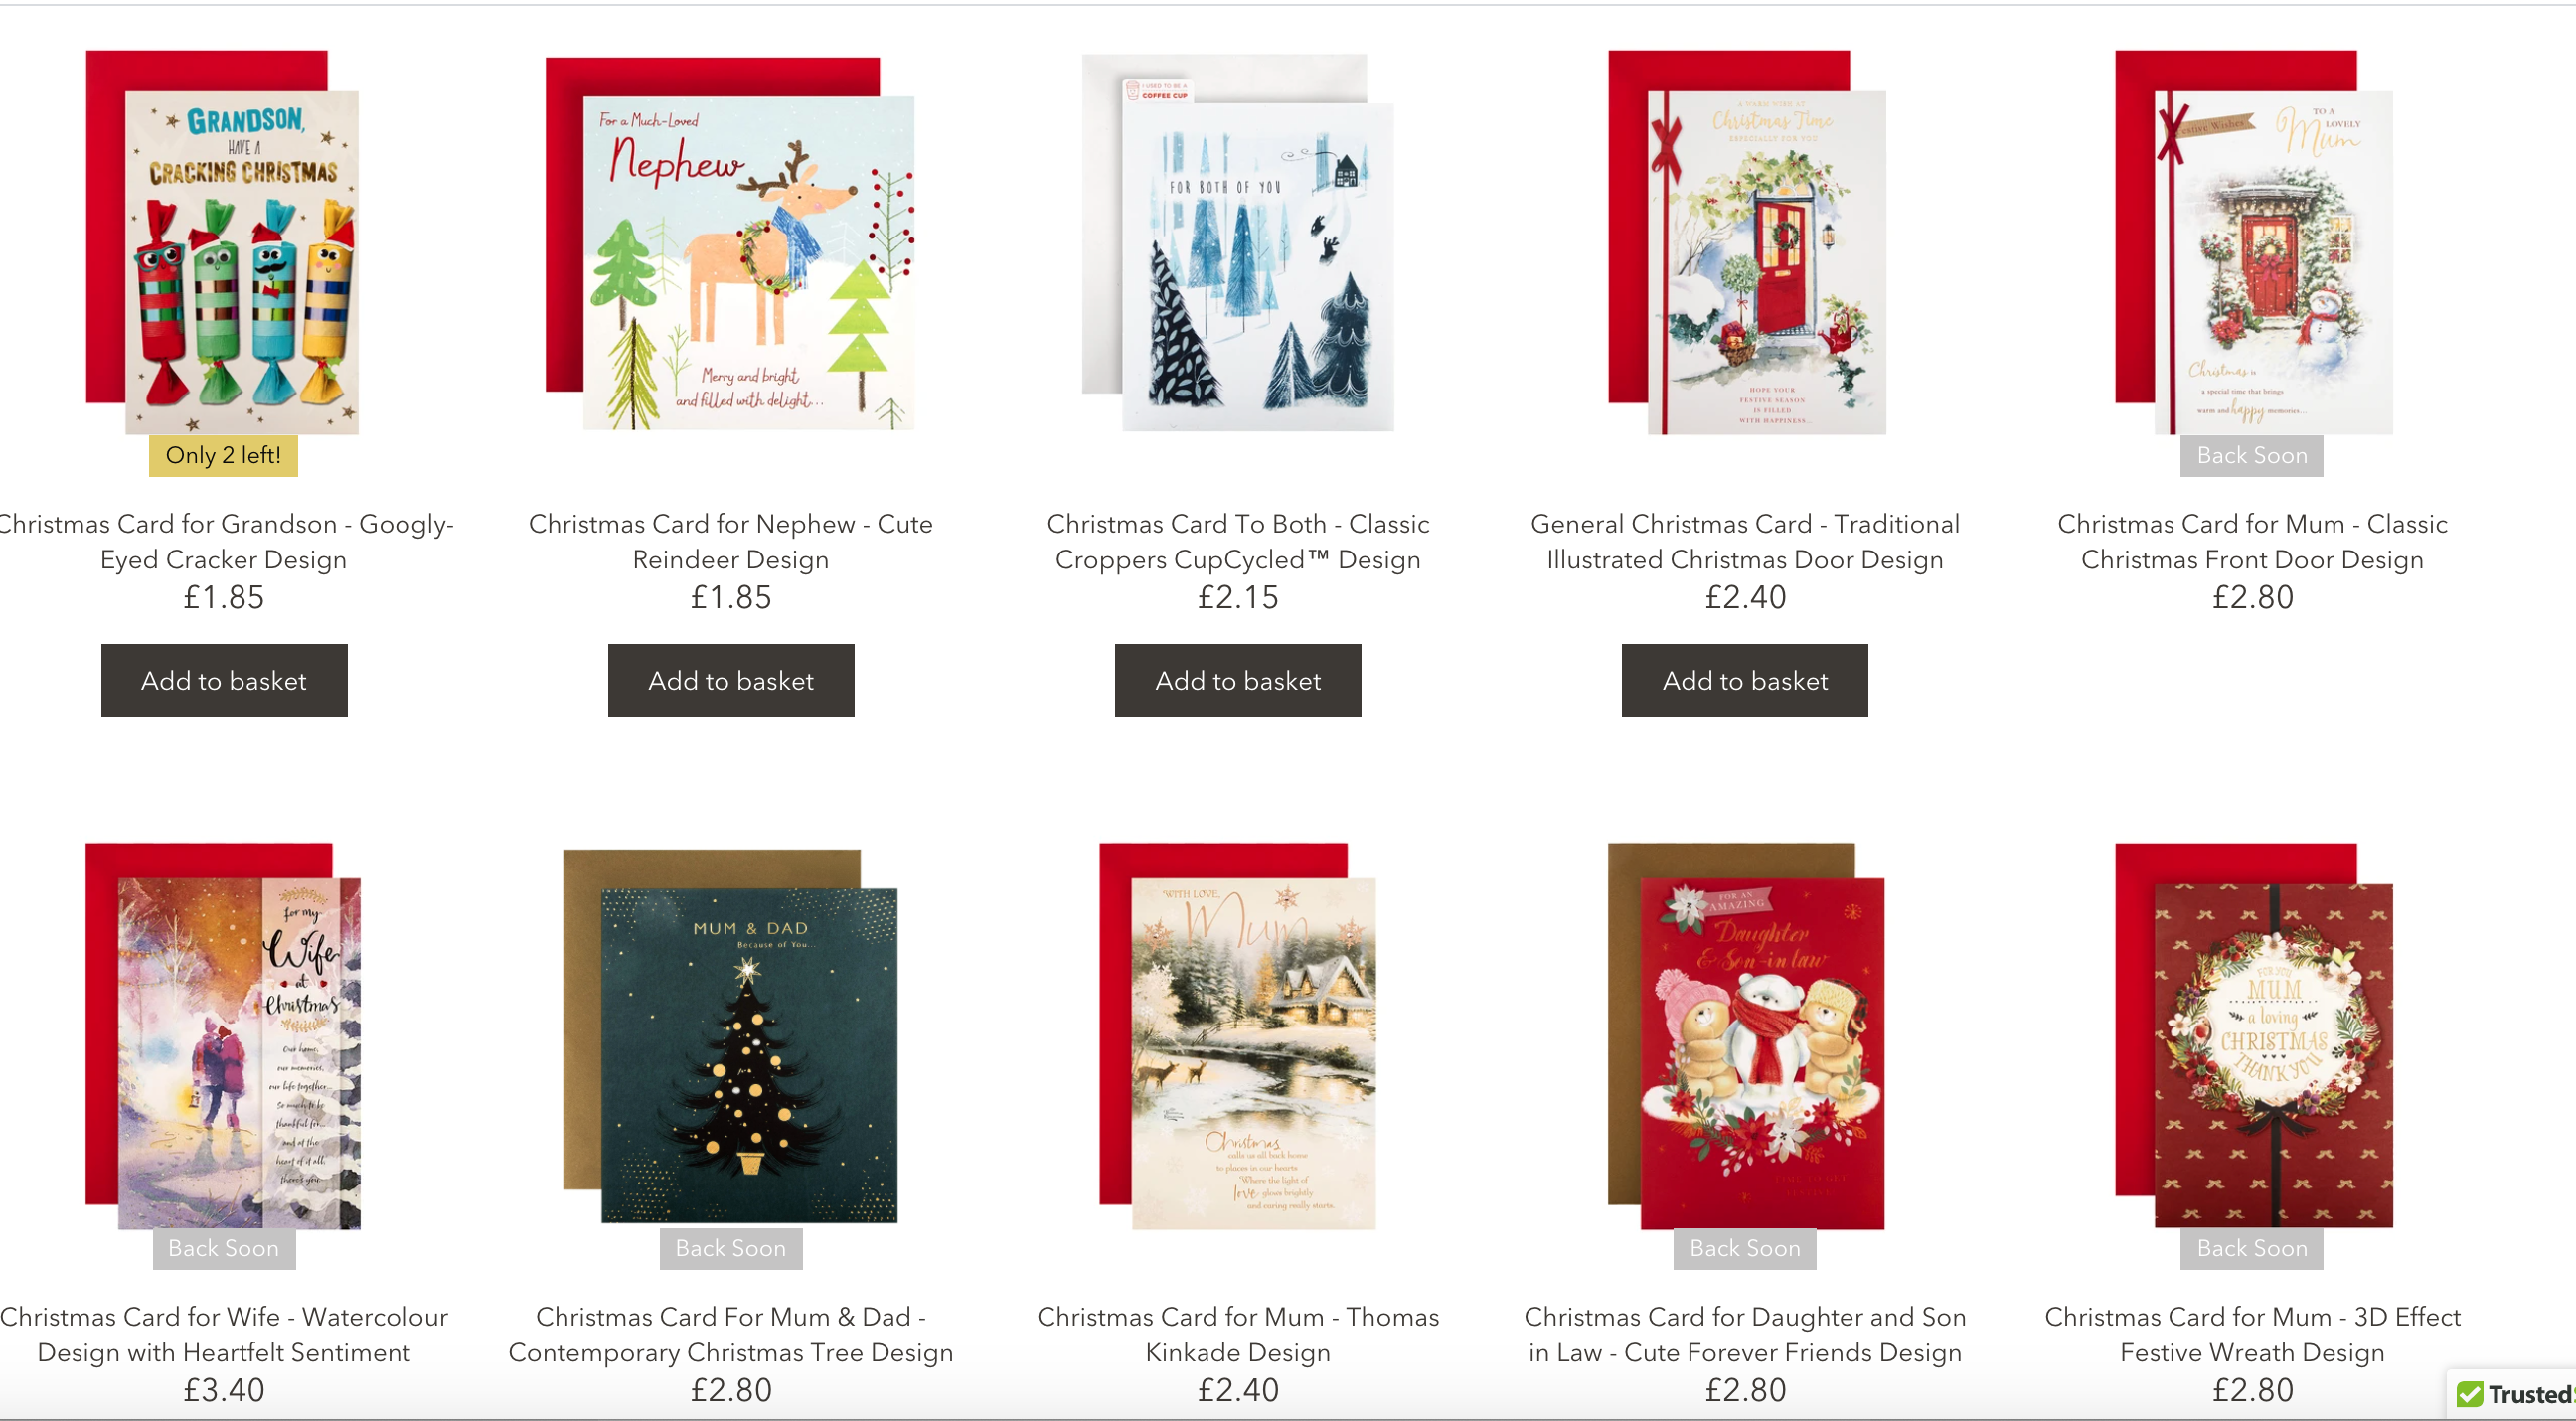 Above: Just a few of the Christmas singles that are being offered to the consumer via the new online platform.